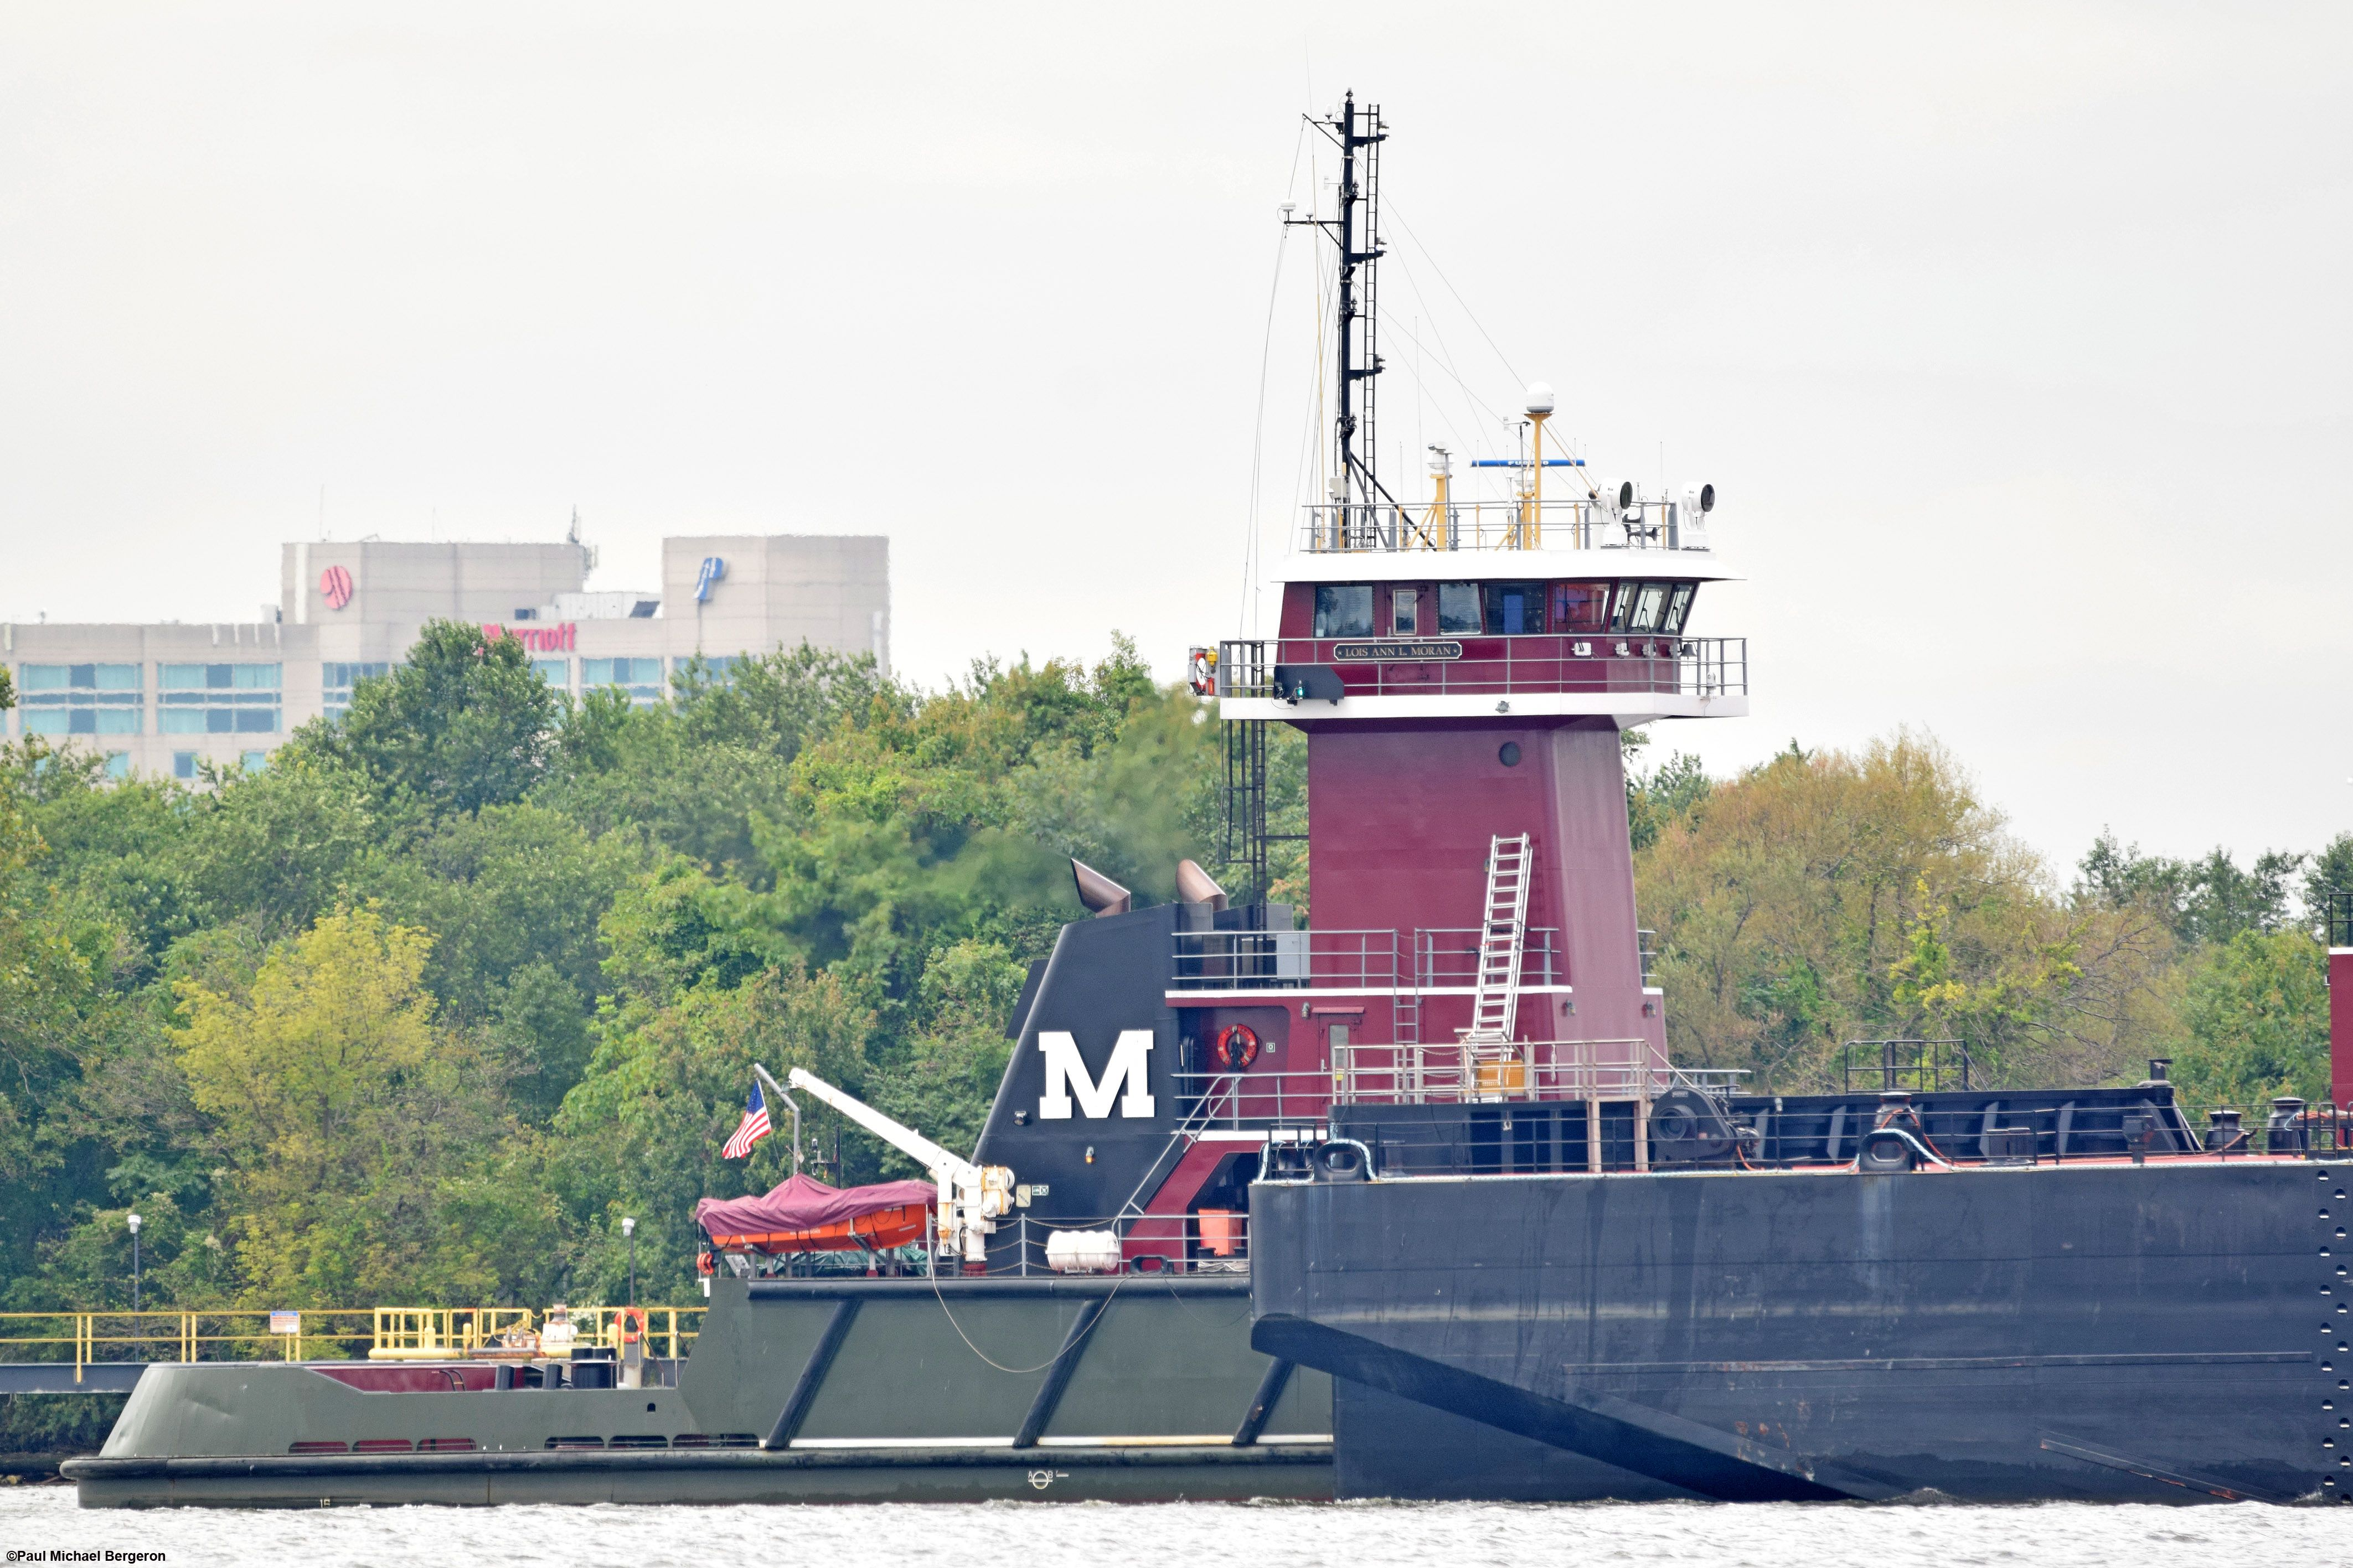 The Lois Ann L  Moran Tugboat on the Delaware River, passing